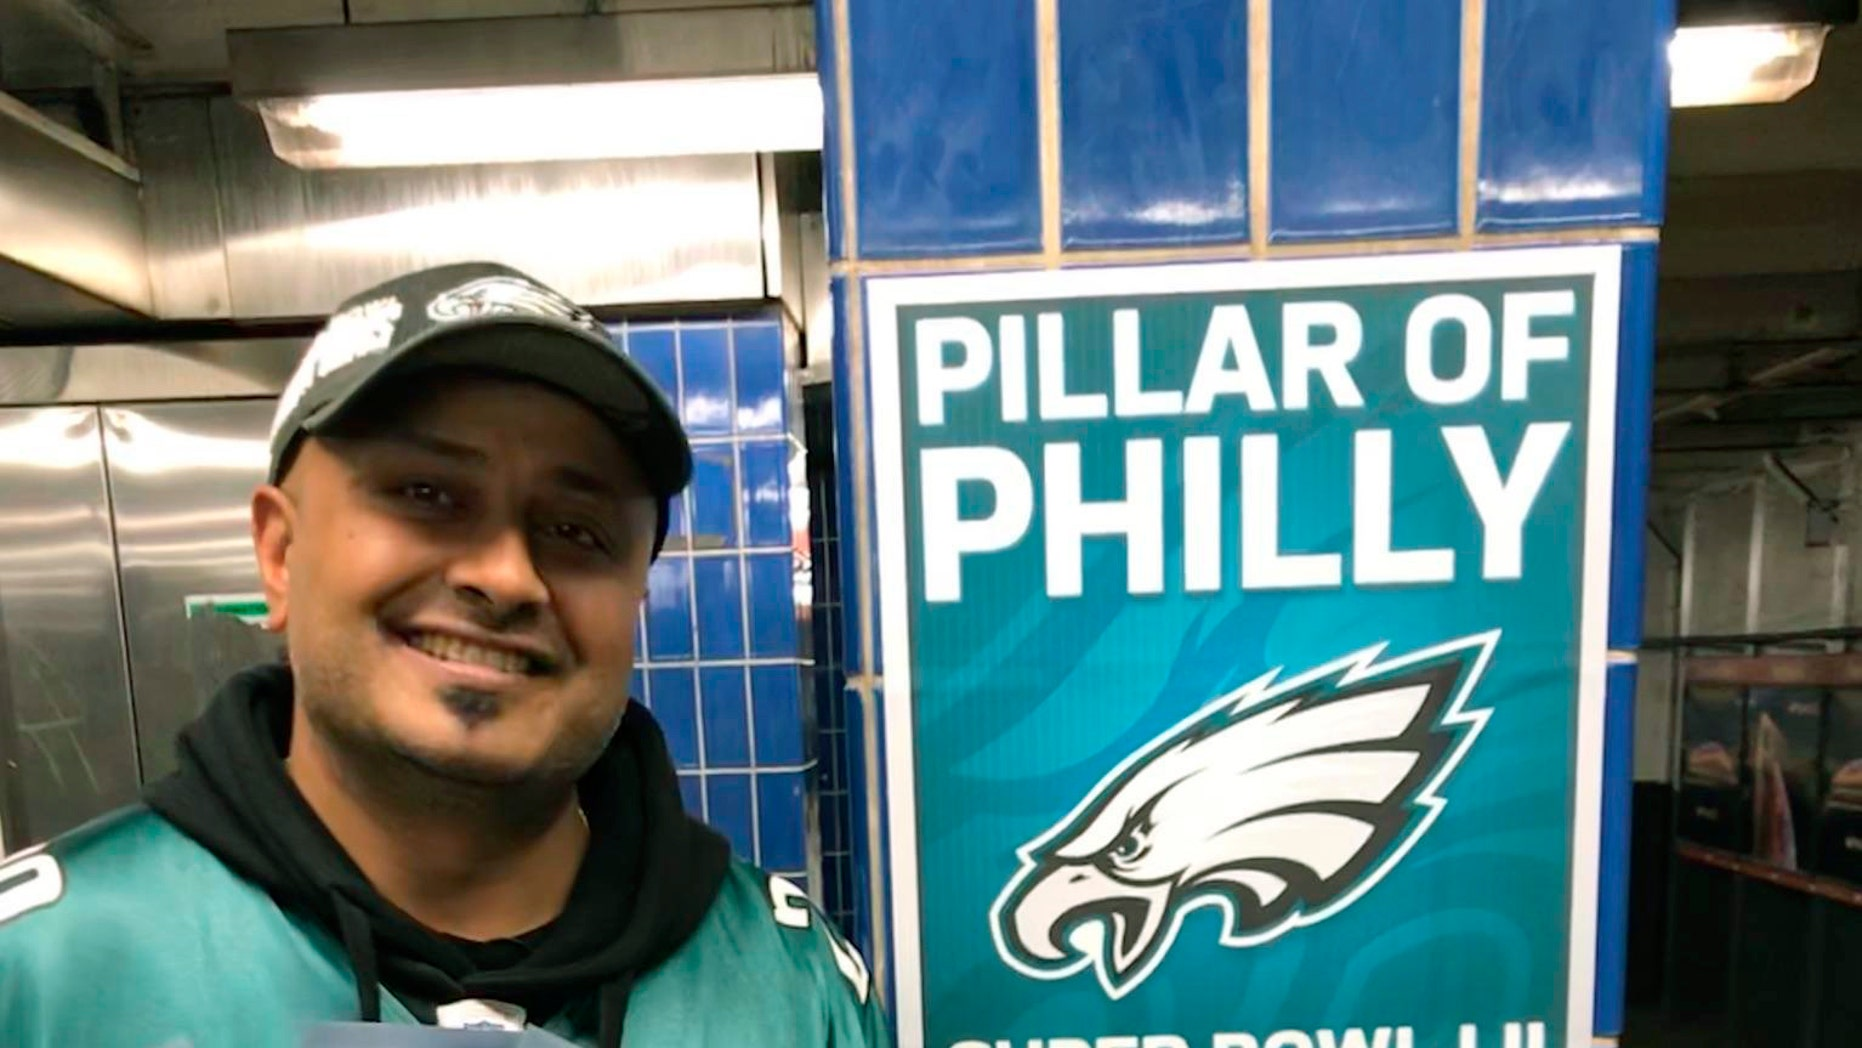 In this October 2018 photo, Philadelphia Eagles fan Jigar Desai poses with tickets to an Oct. 28 football game between the Eagles and the Jacksonville Jaguars in front of the subway pillar he ran into earlier this year at Ellsworth Station on the Broad Street subway line in Philadelphia.